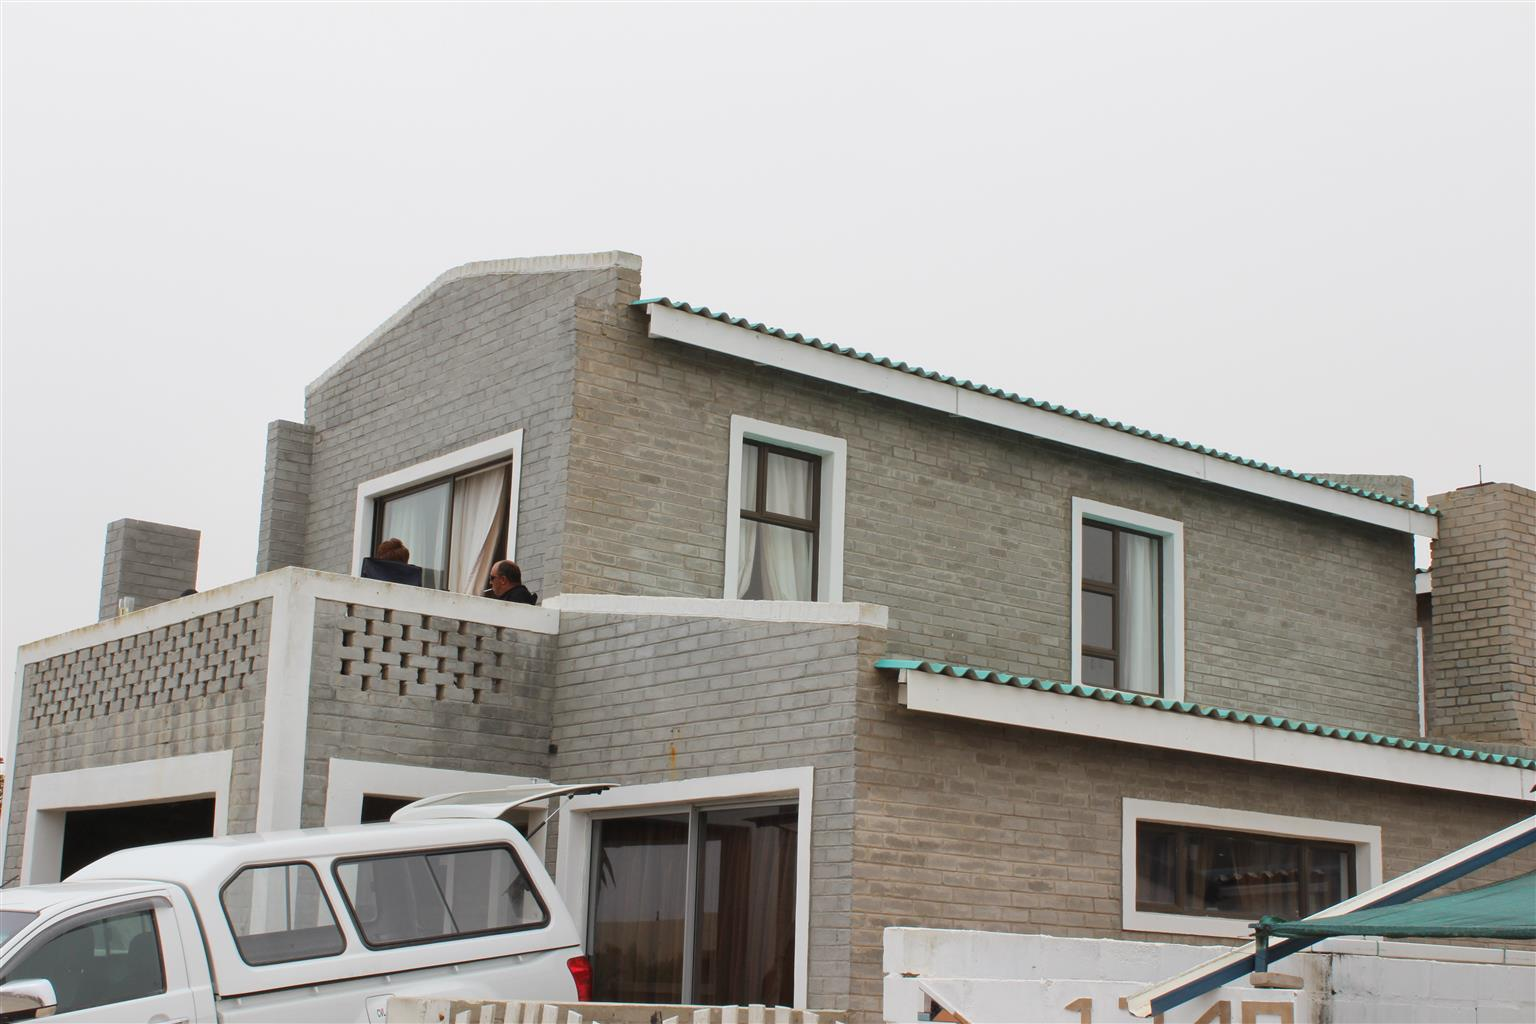 Own a beautiful property in McDouglas Bay, Port Nolloth. The holiday mecca of the Northern Cape